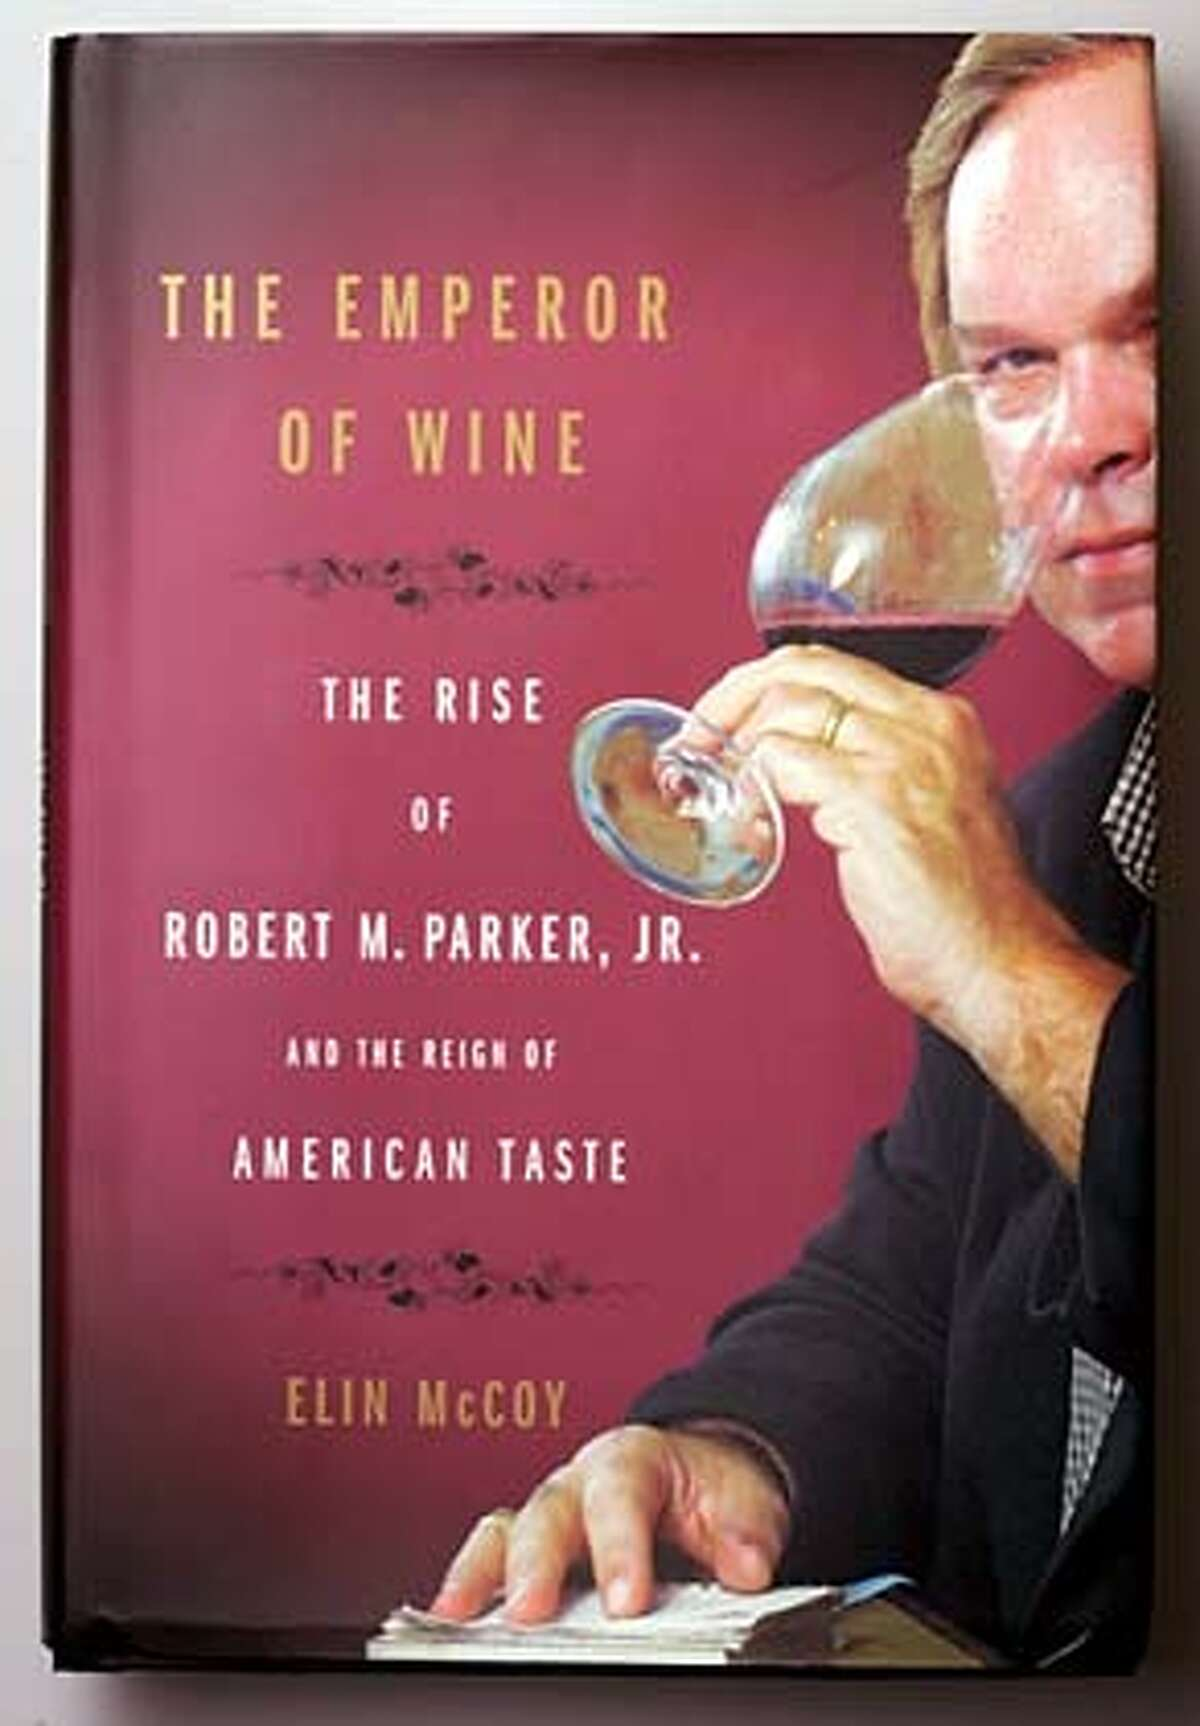 Wine section book review The Emperor of Wine. in San Francisco 6/9/05 Chris Hardy / San Francisco Chronicle